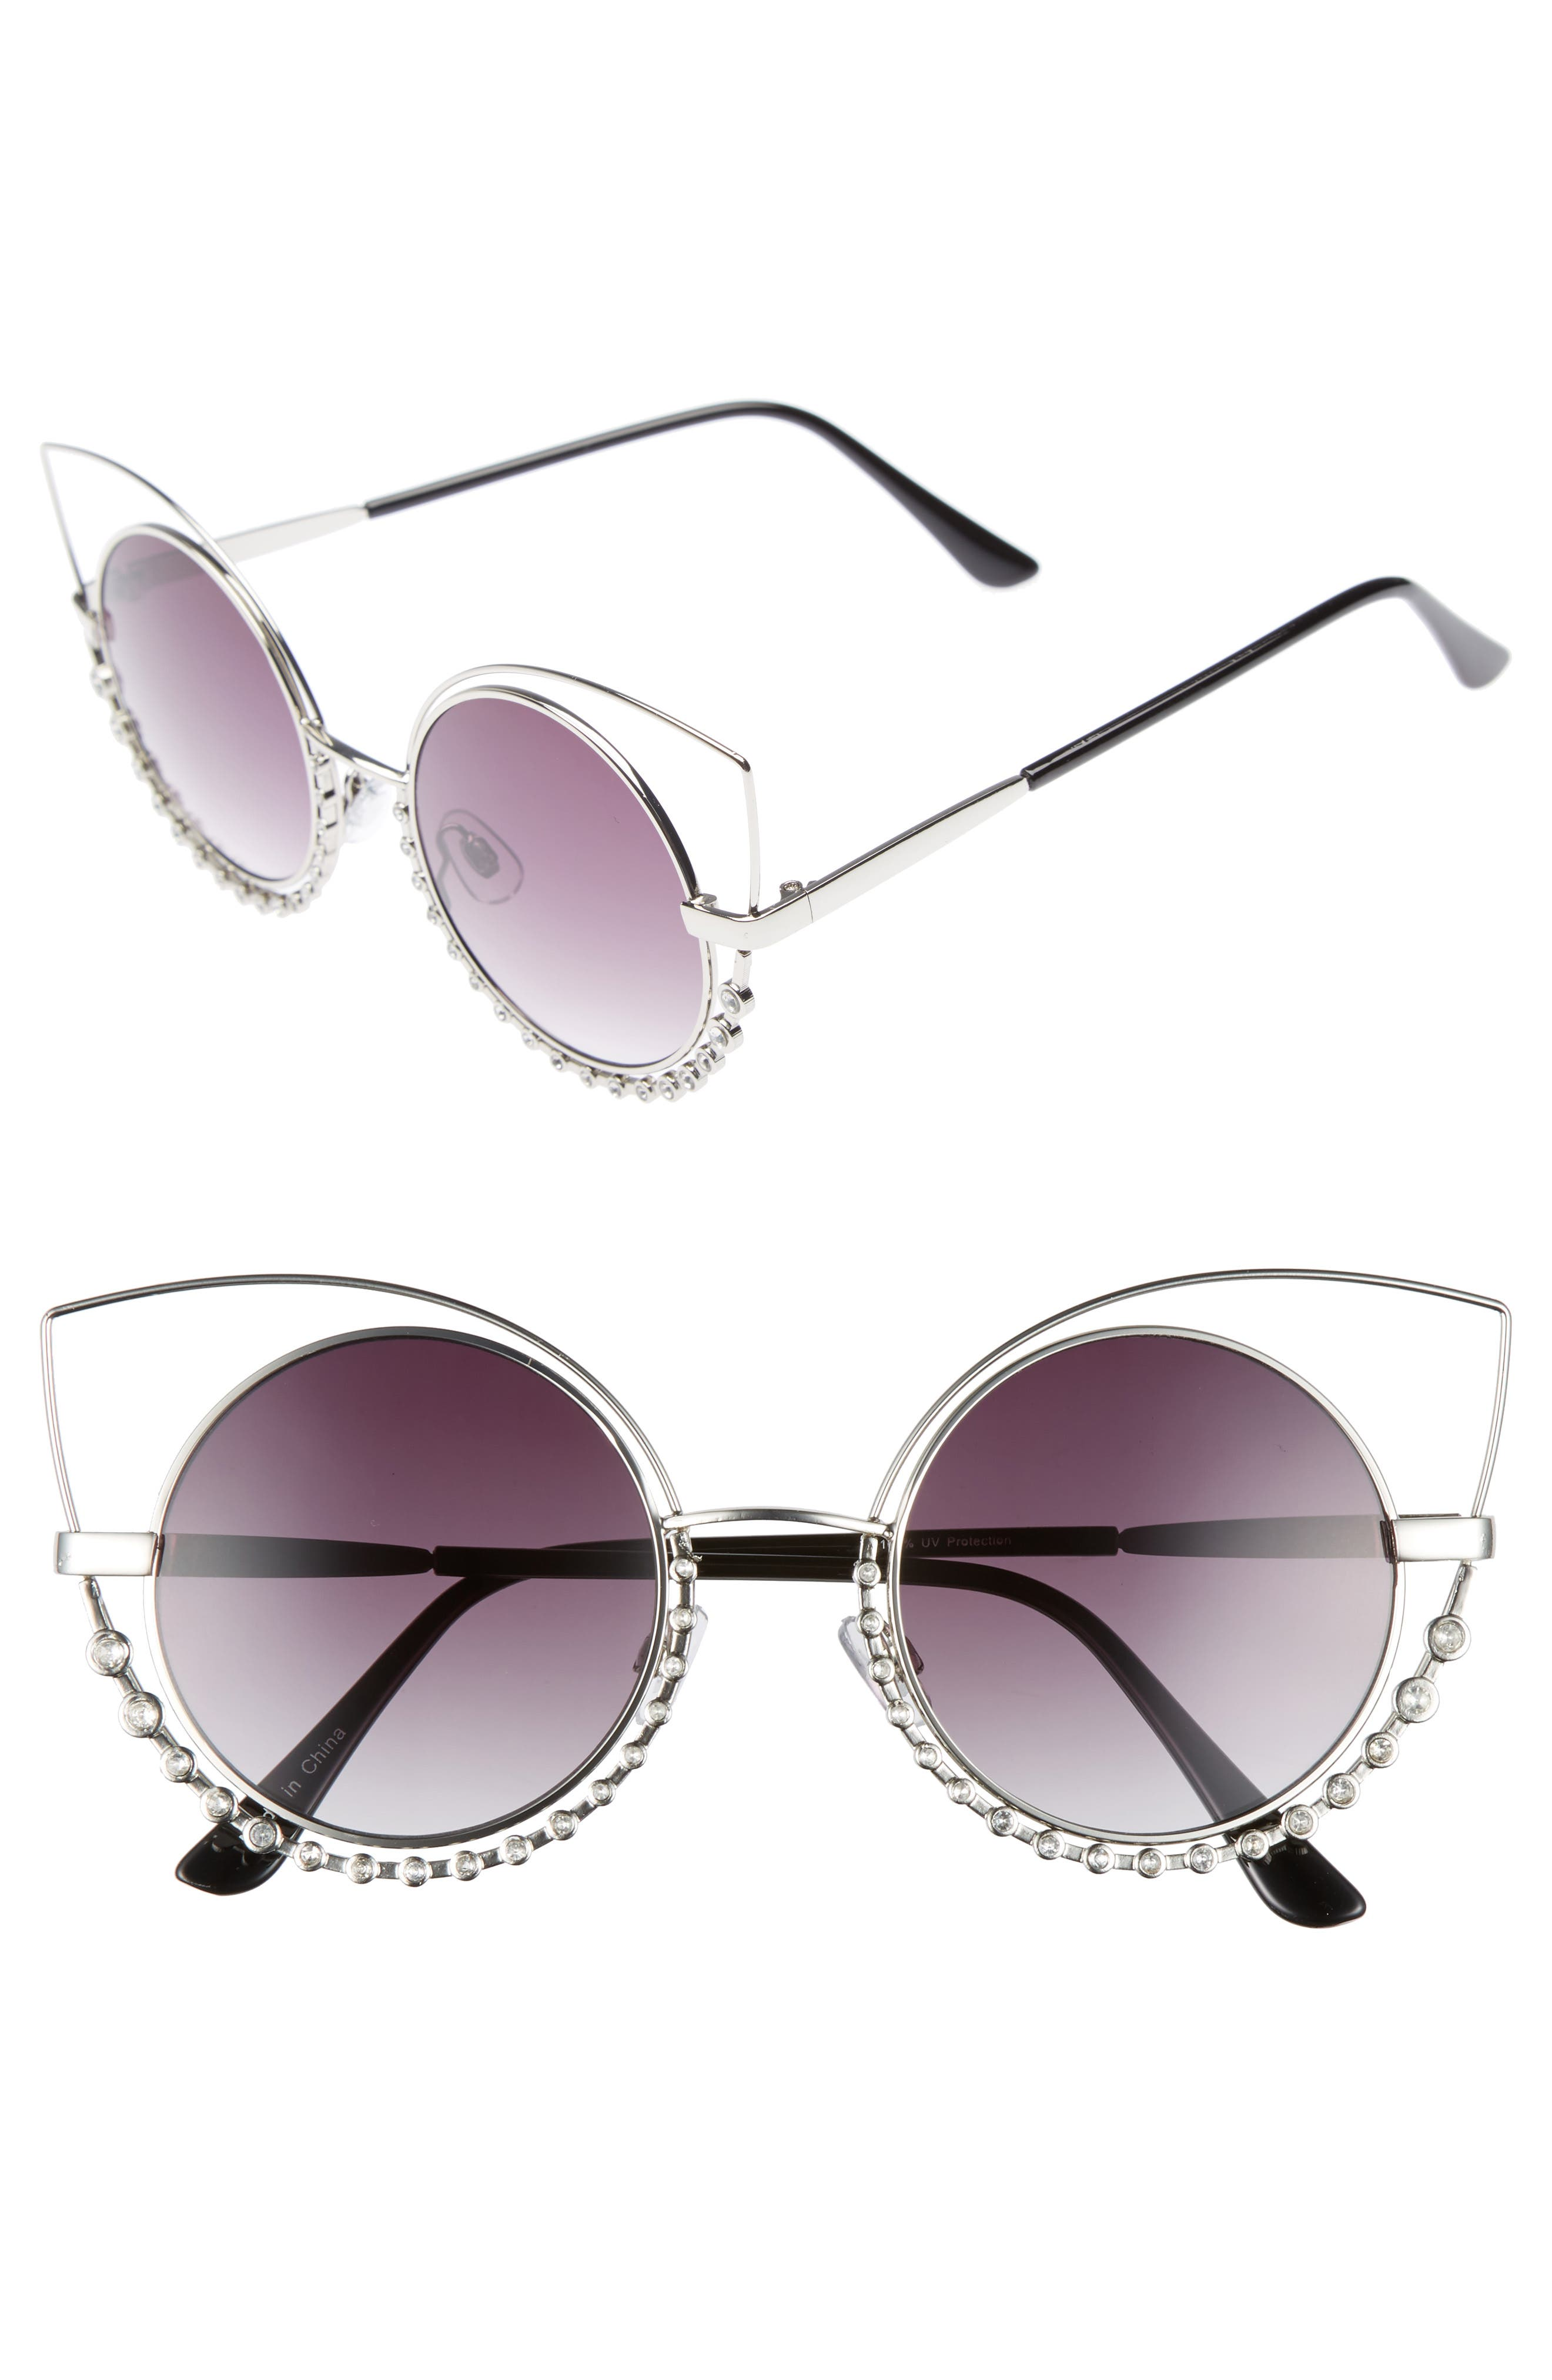 55mm Studded Round Sunglasses,                         Main,                         color, Silver